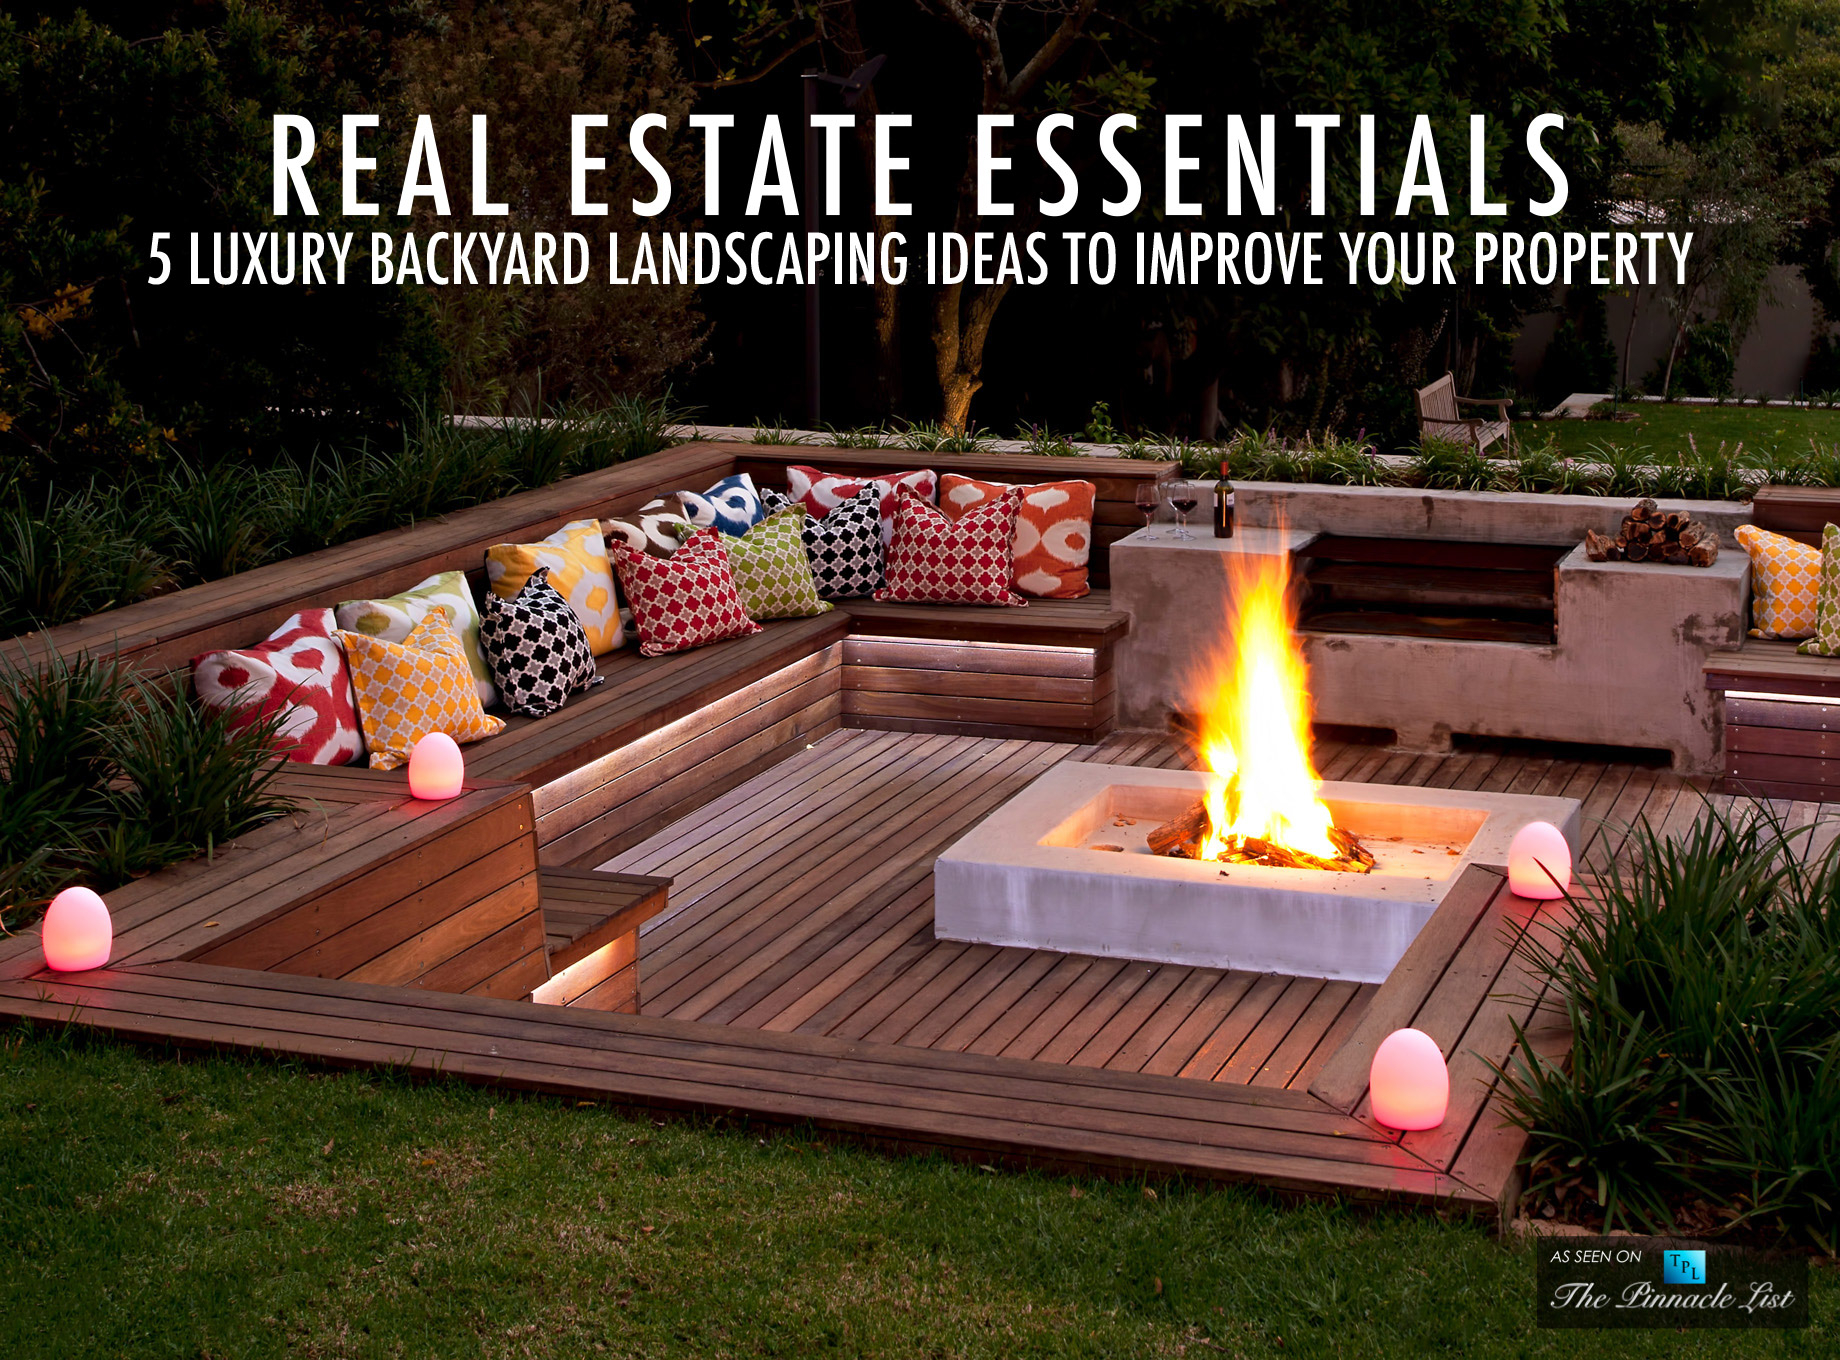 Real Estate Essentials 5 Luxury Backyard Landscaping Ideas To in Luxury Backyard Landscaping